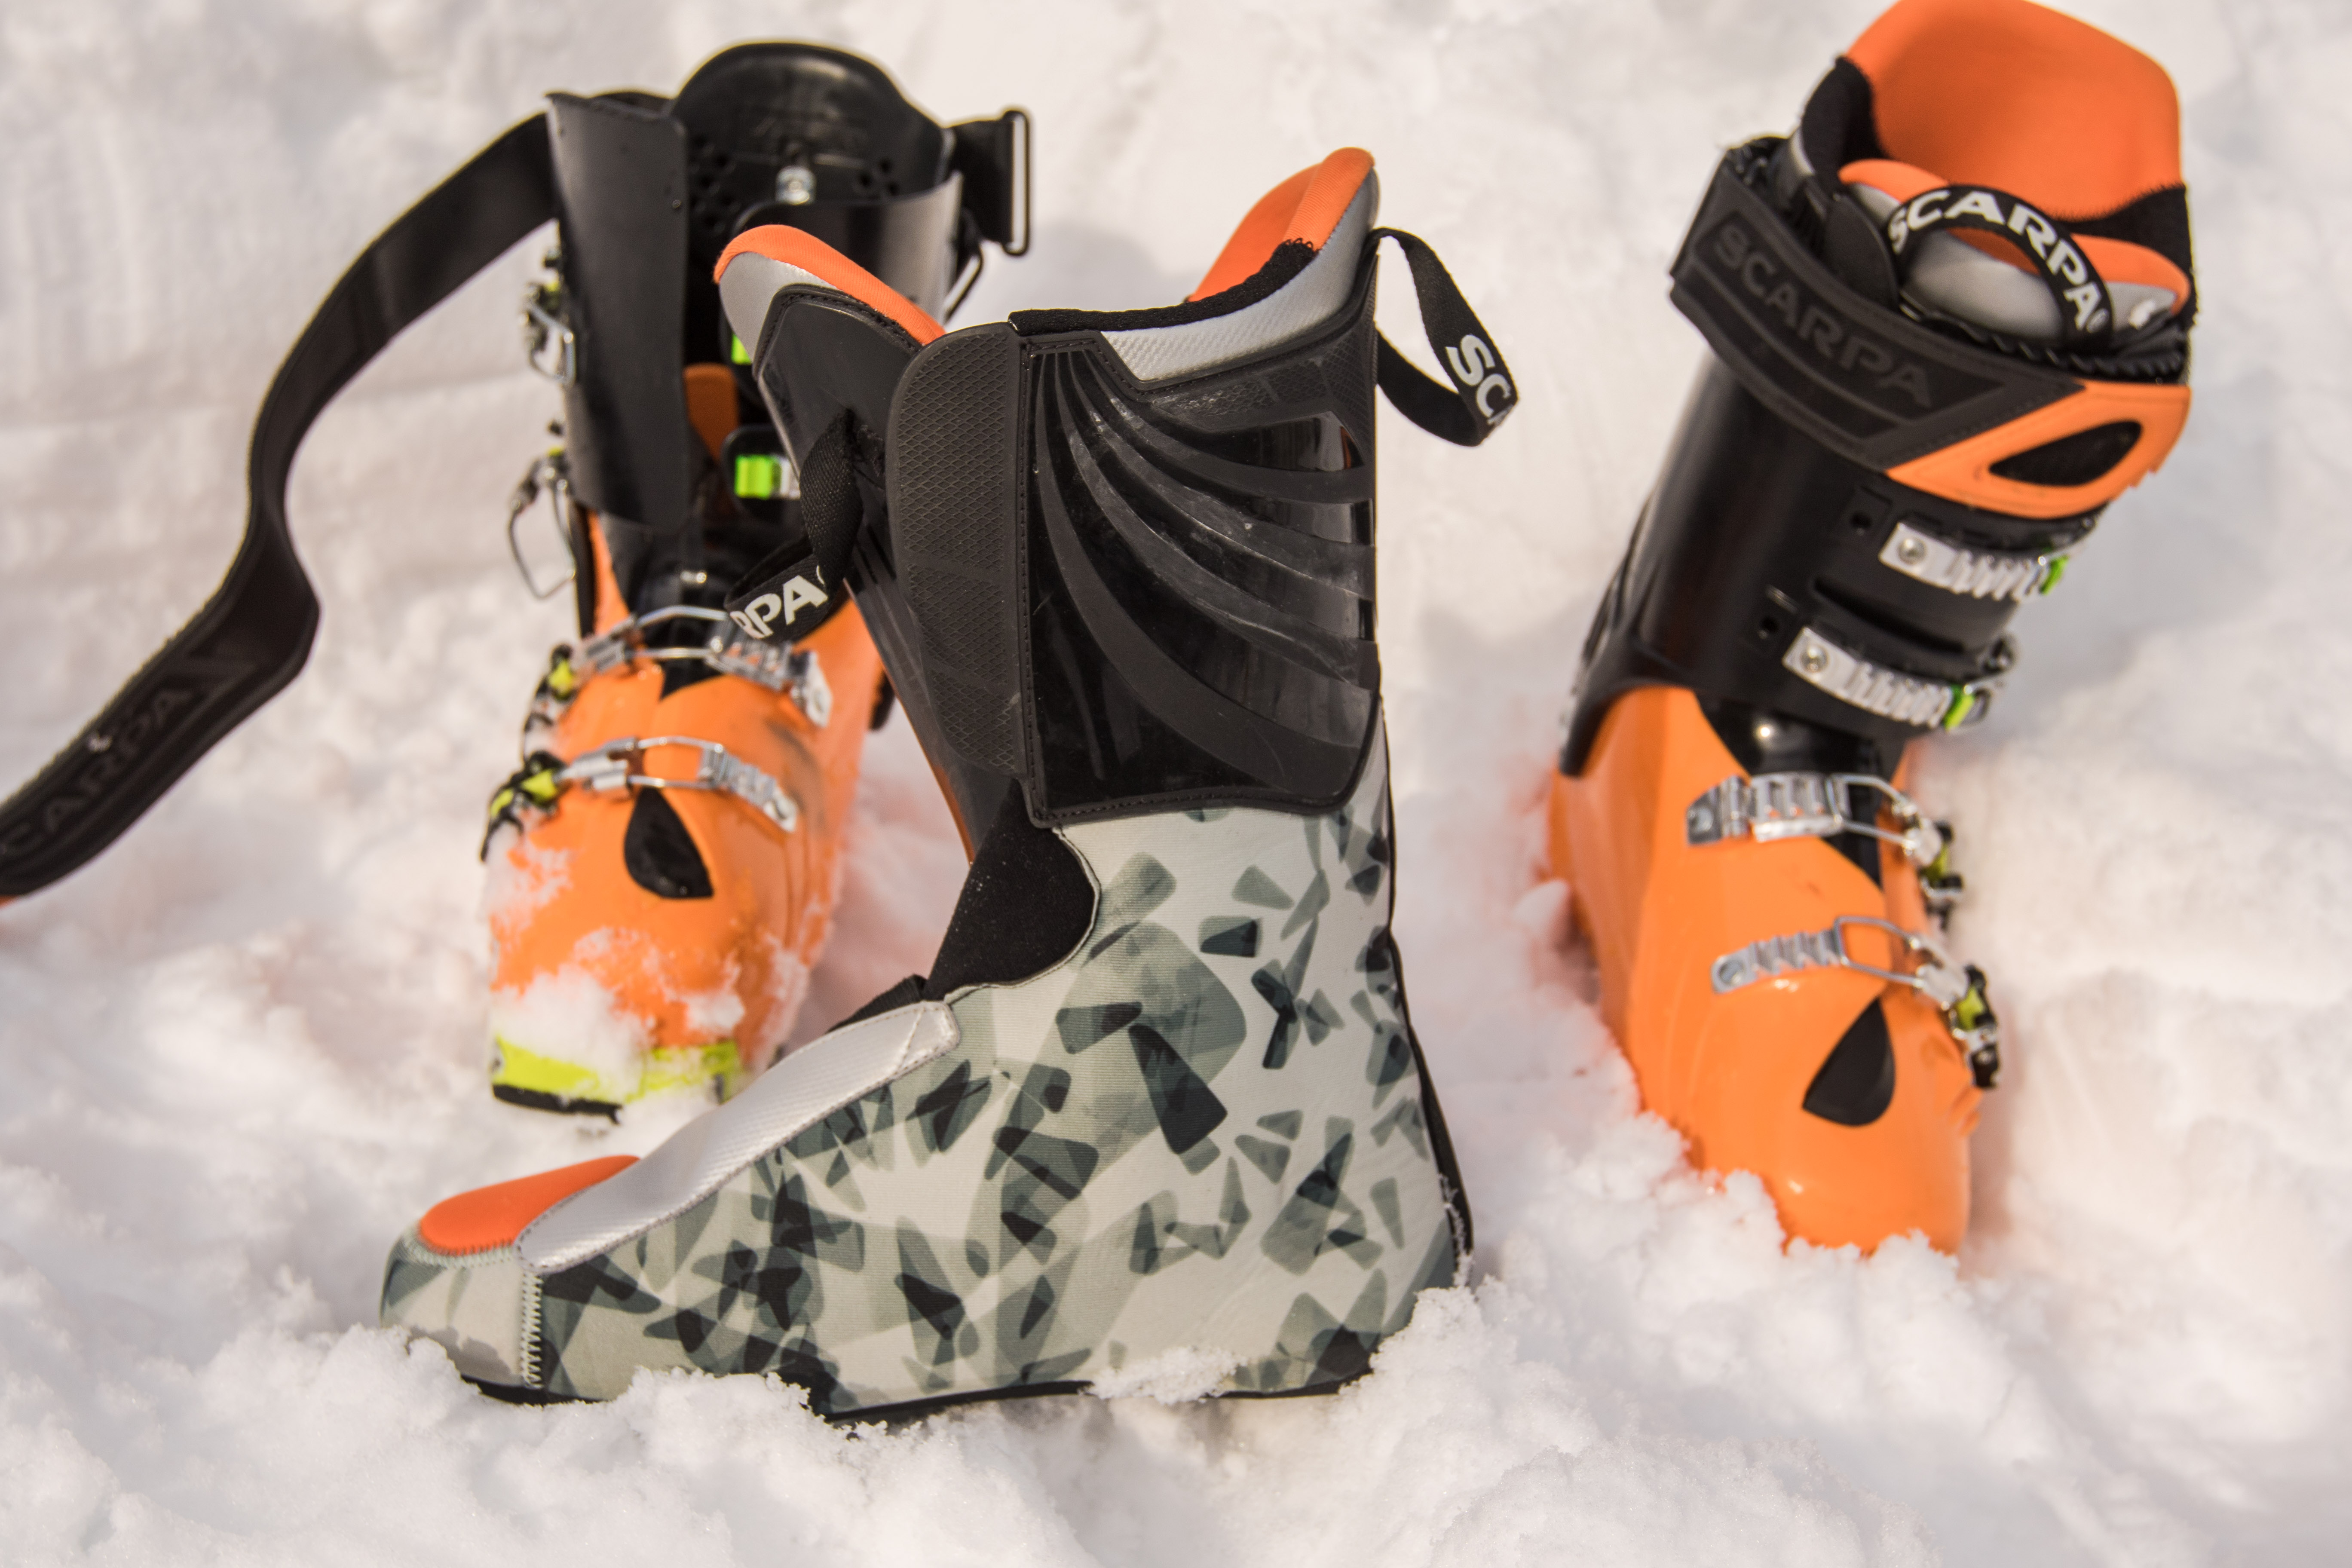 scarpa-fs-130-freeride-boots-5-of-10